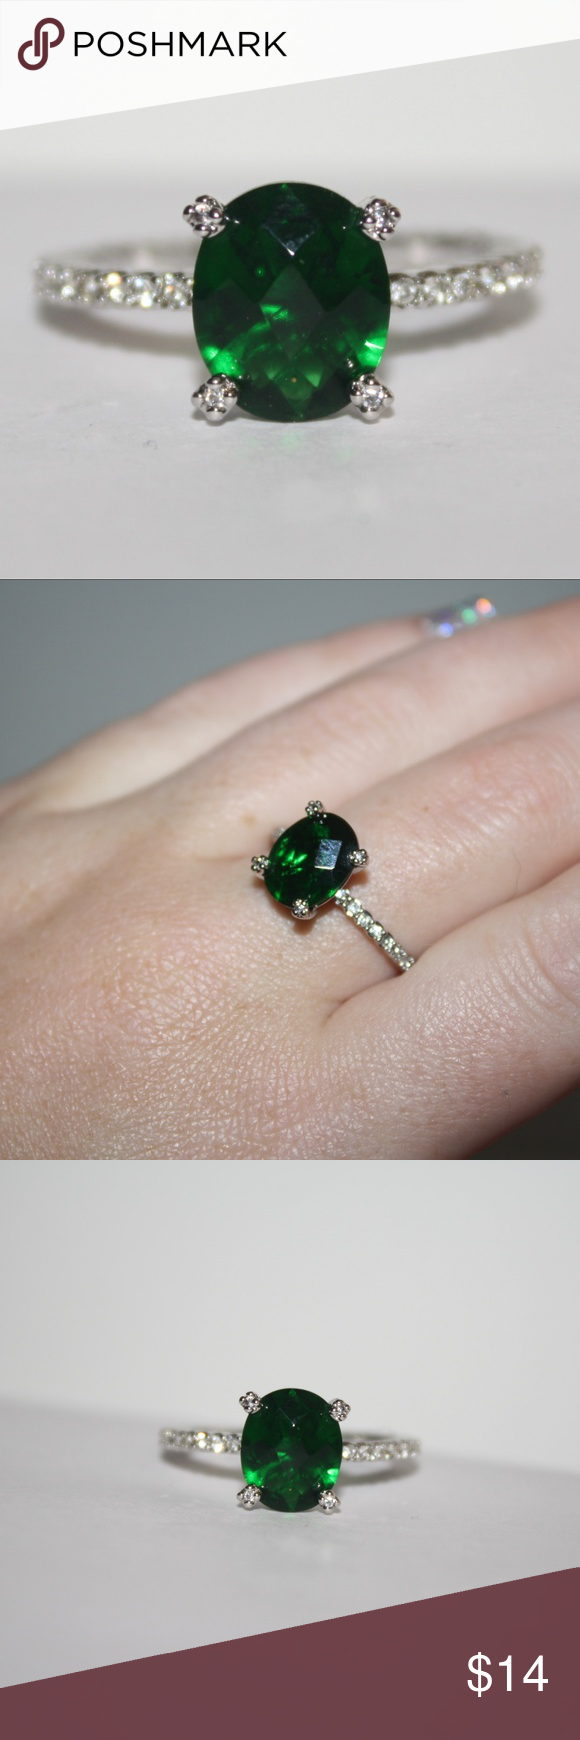 Stunning Silver and Emerald CZ ring size 10.5 This is a